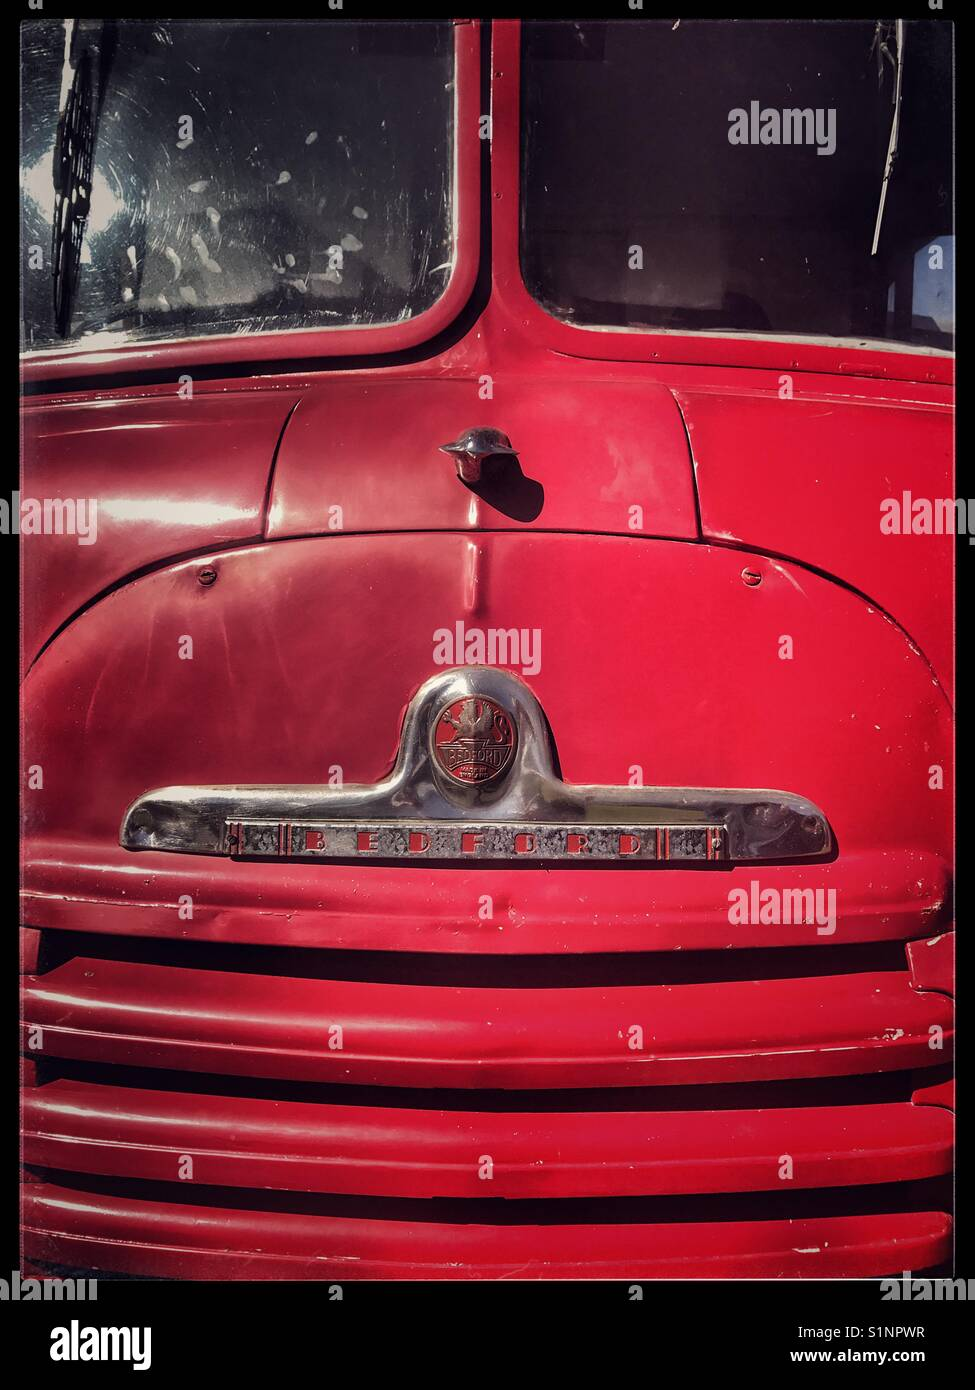 Red Bedford truck. - Stock Image